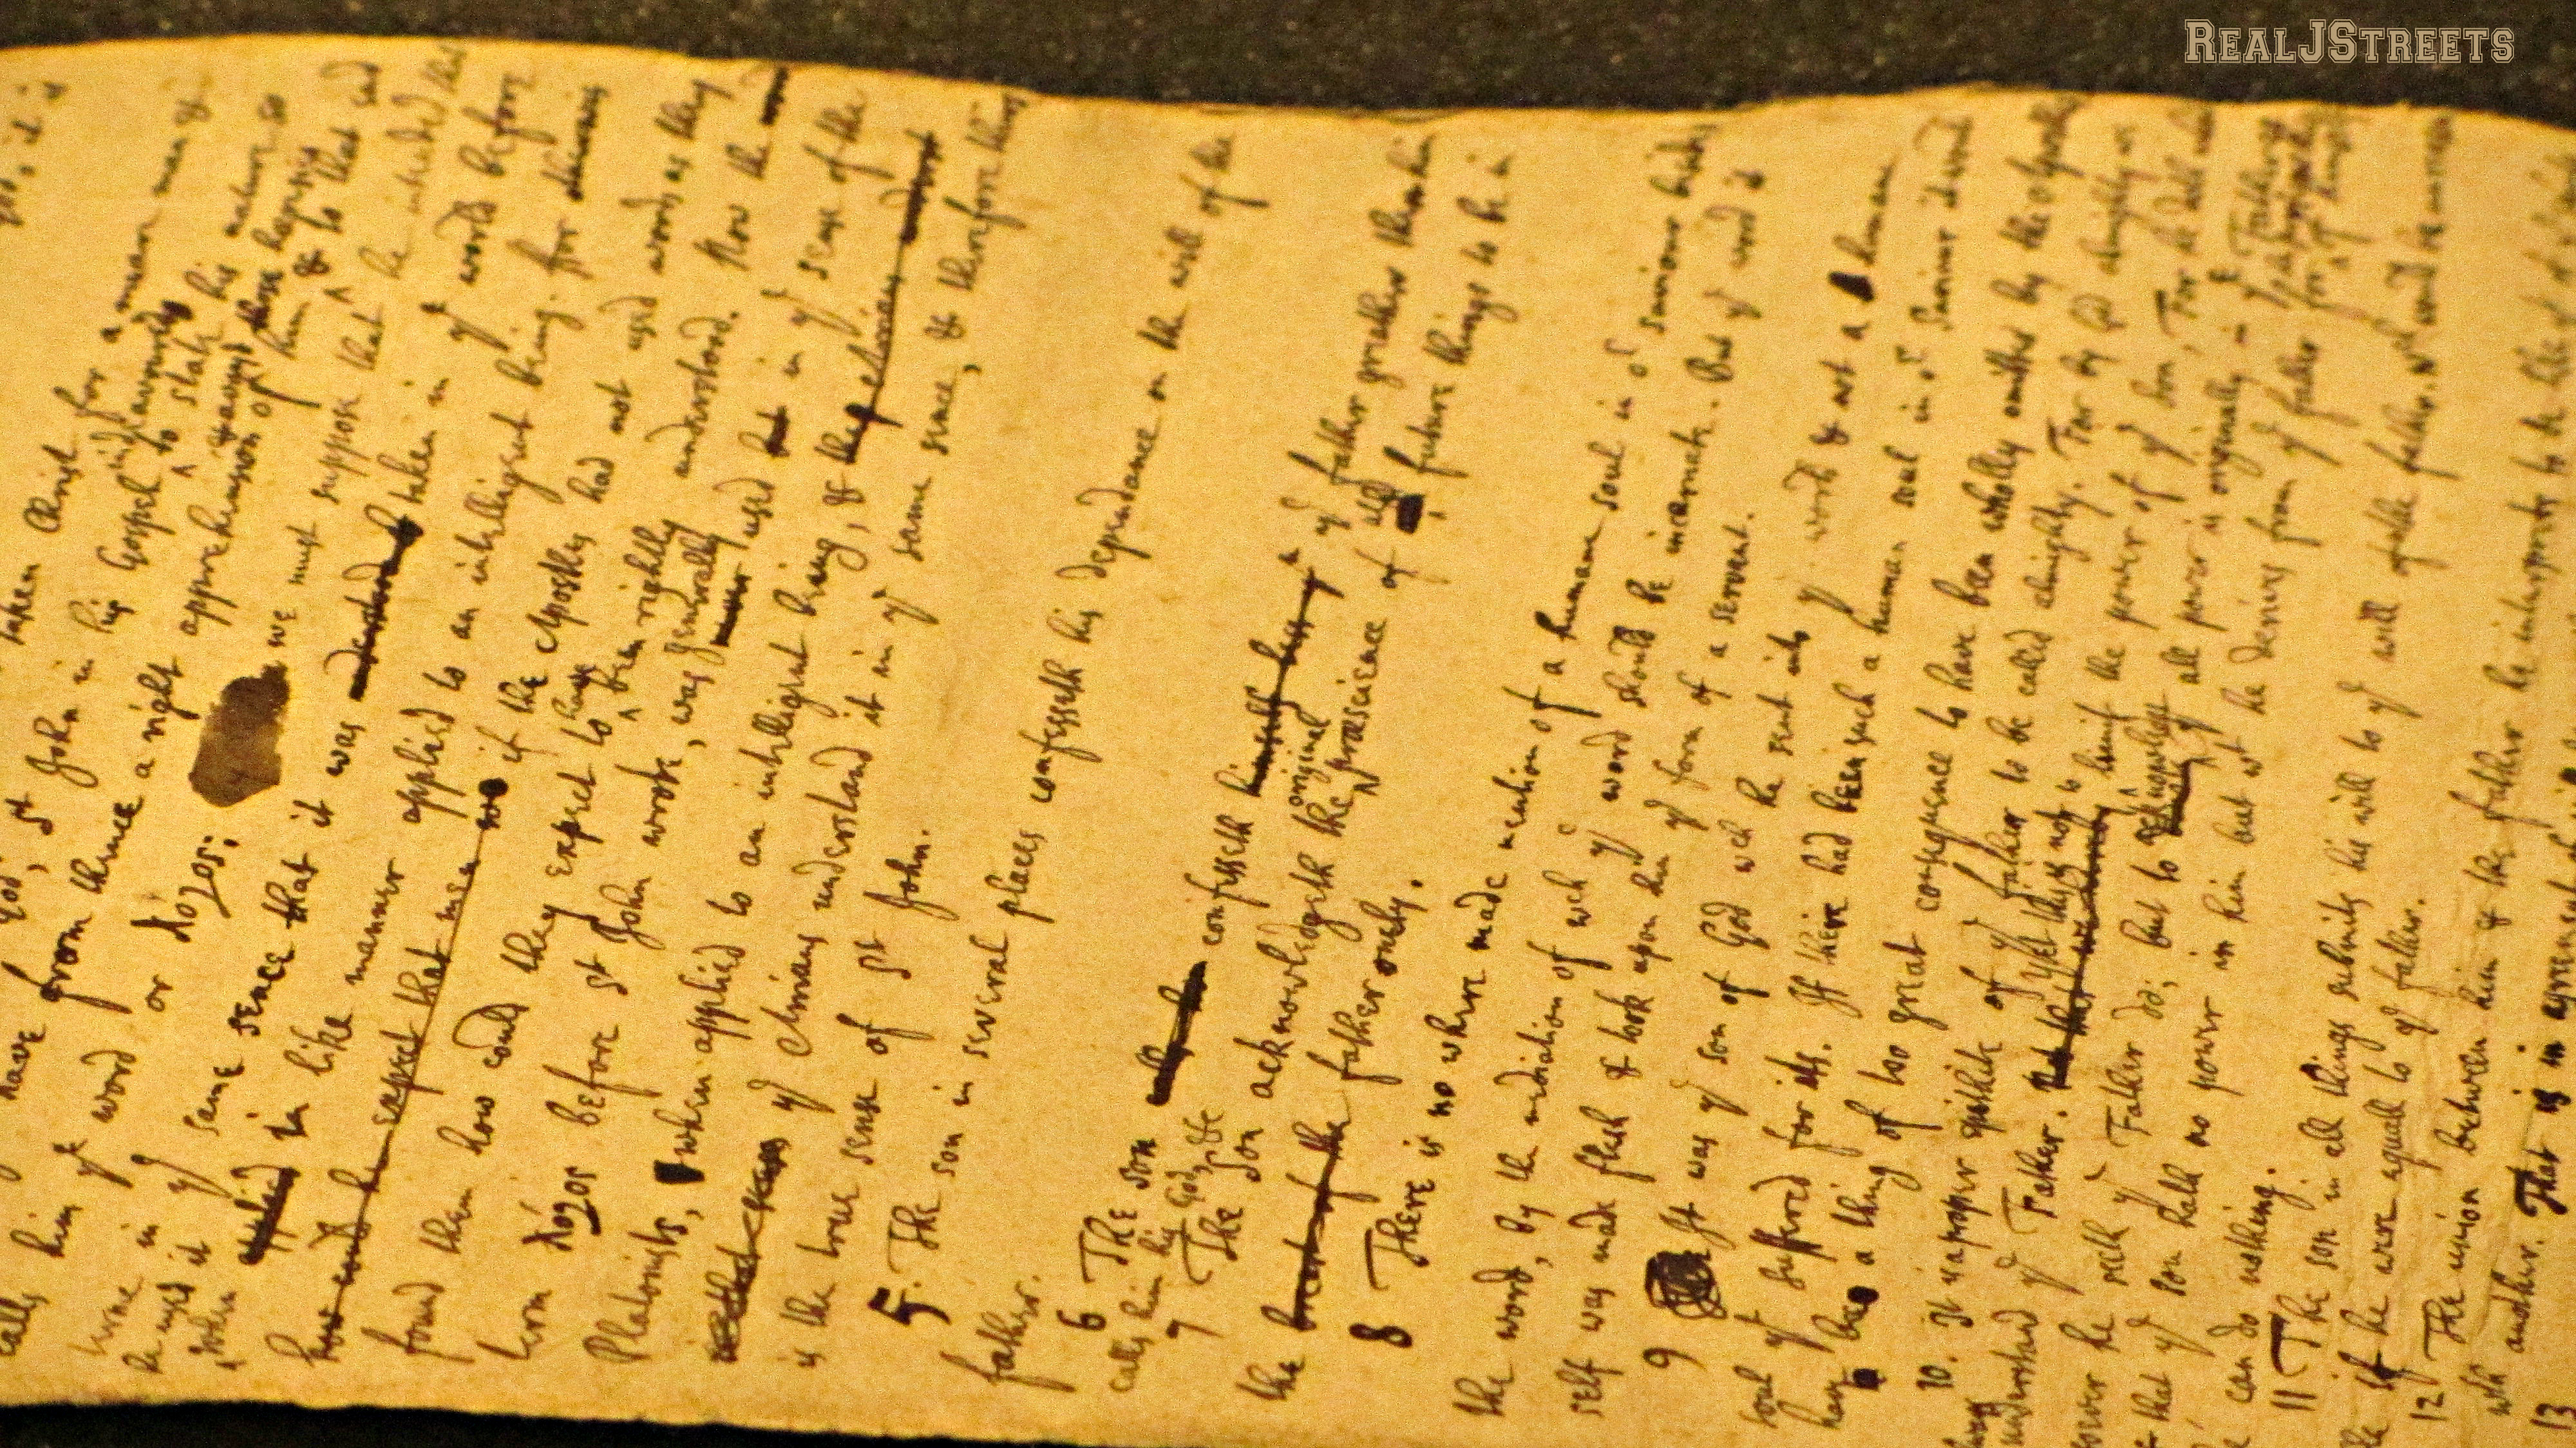 letter by Isaac Newton in Israel Library